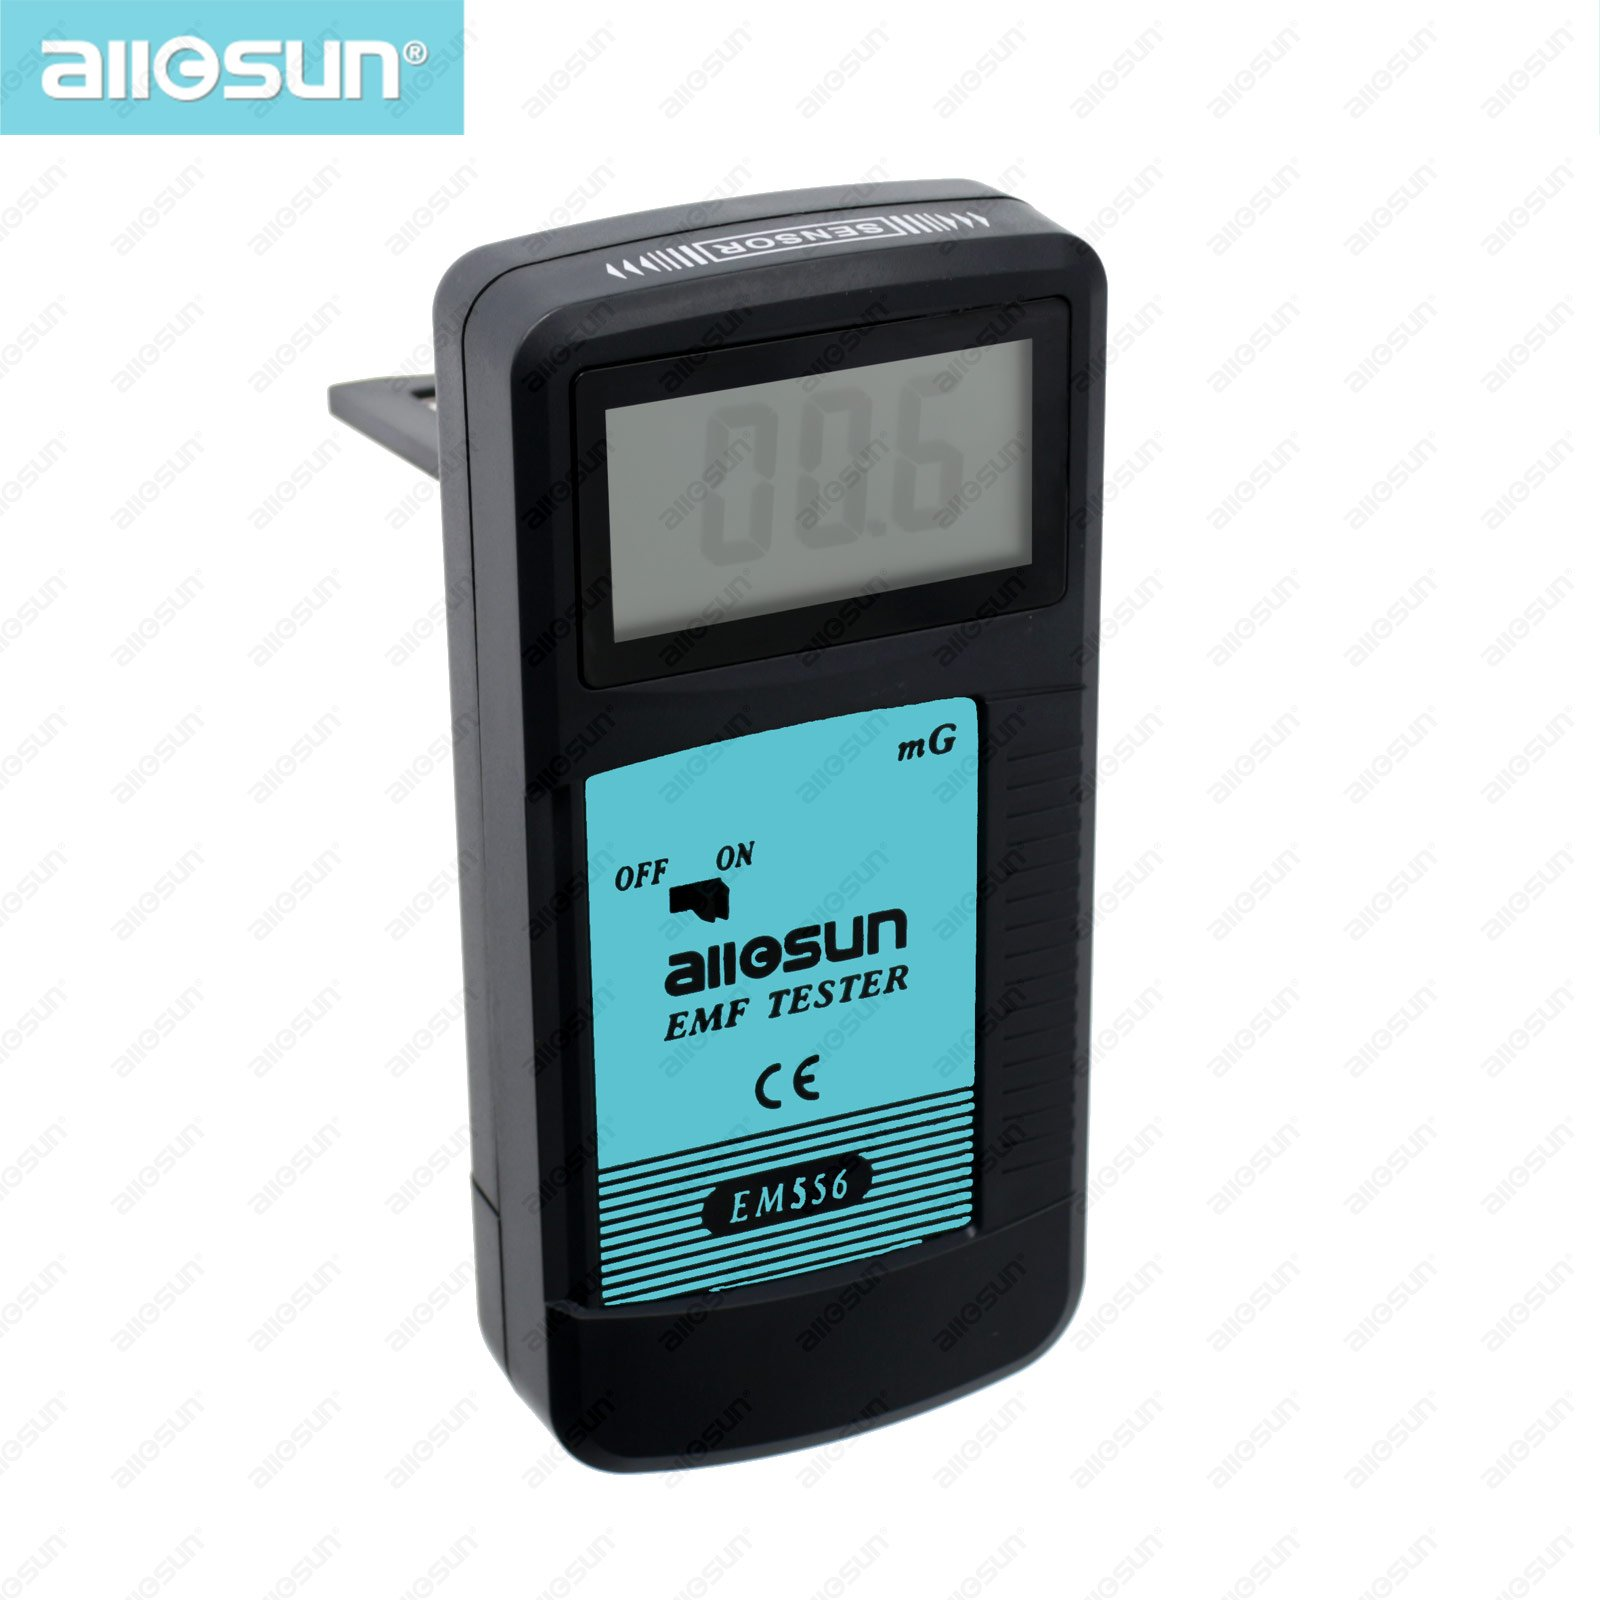 All-sun EM556 High Sensitivity EMF Tester 0.1-199.9mG 30HZ-400HZ Test the Magnitude of Electromagnetic Field Radiation